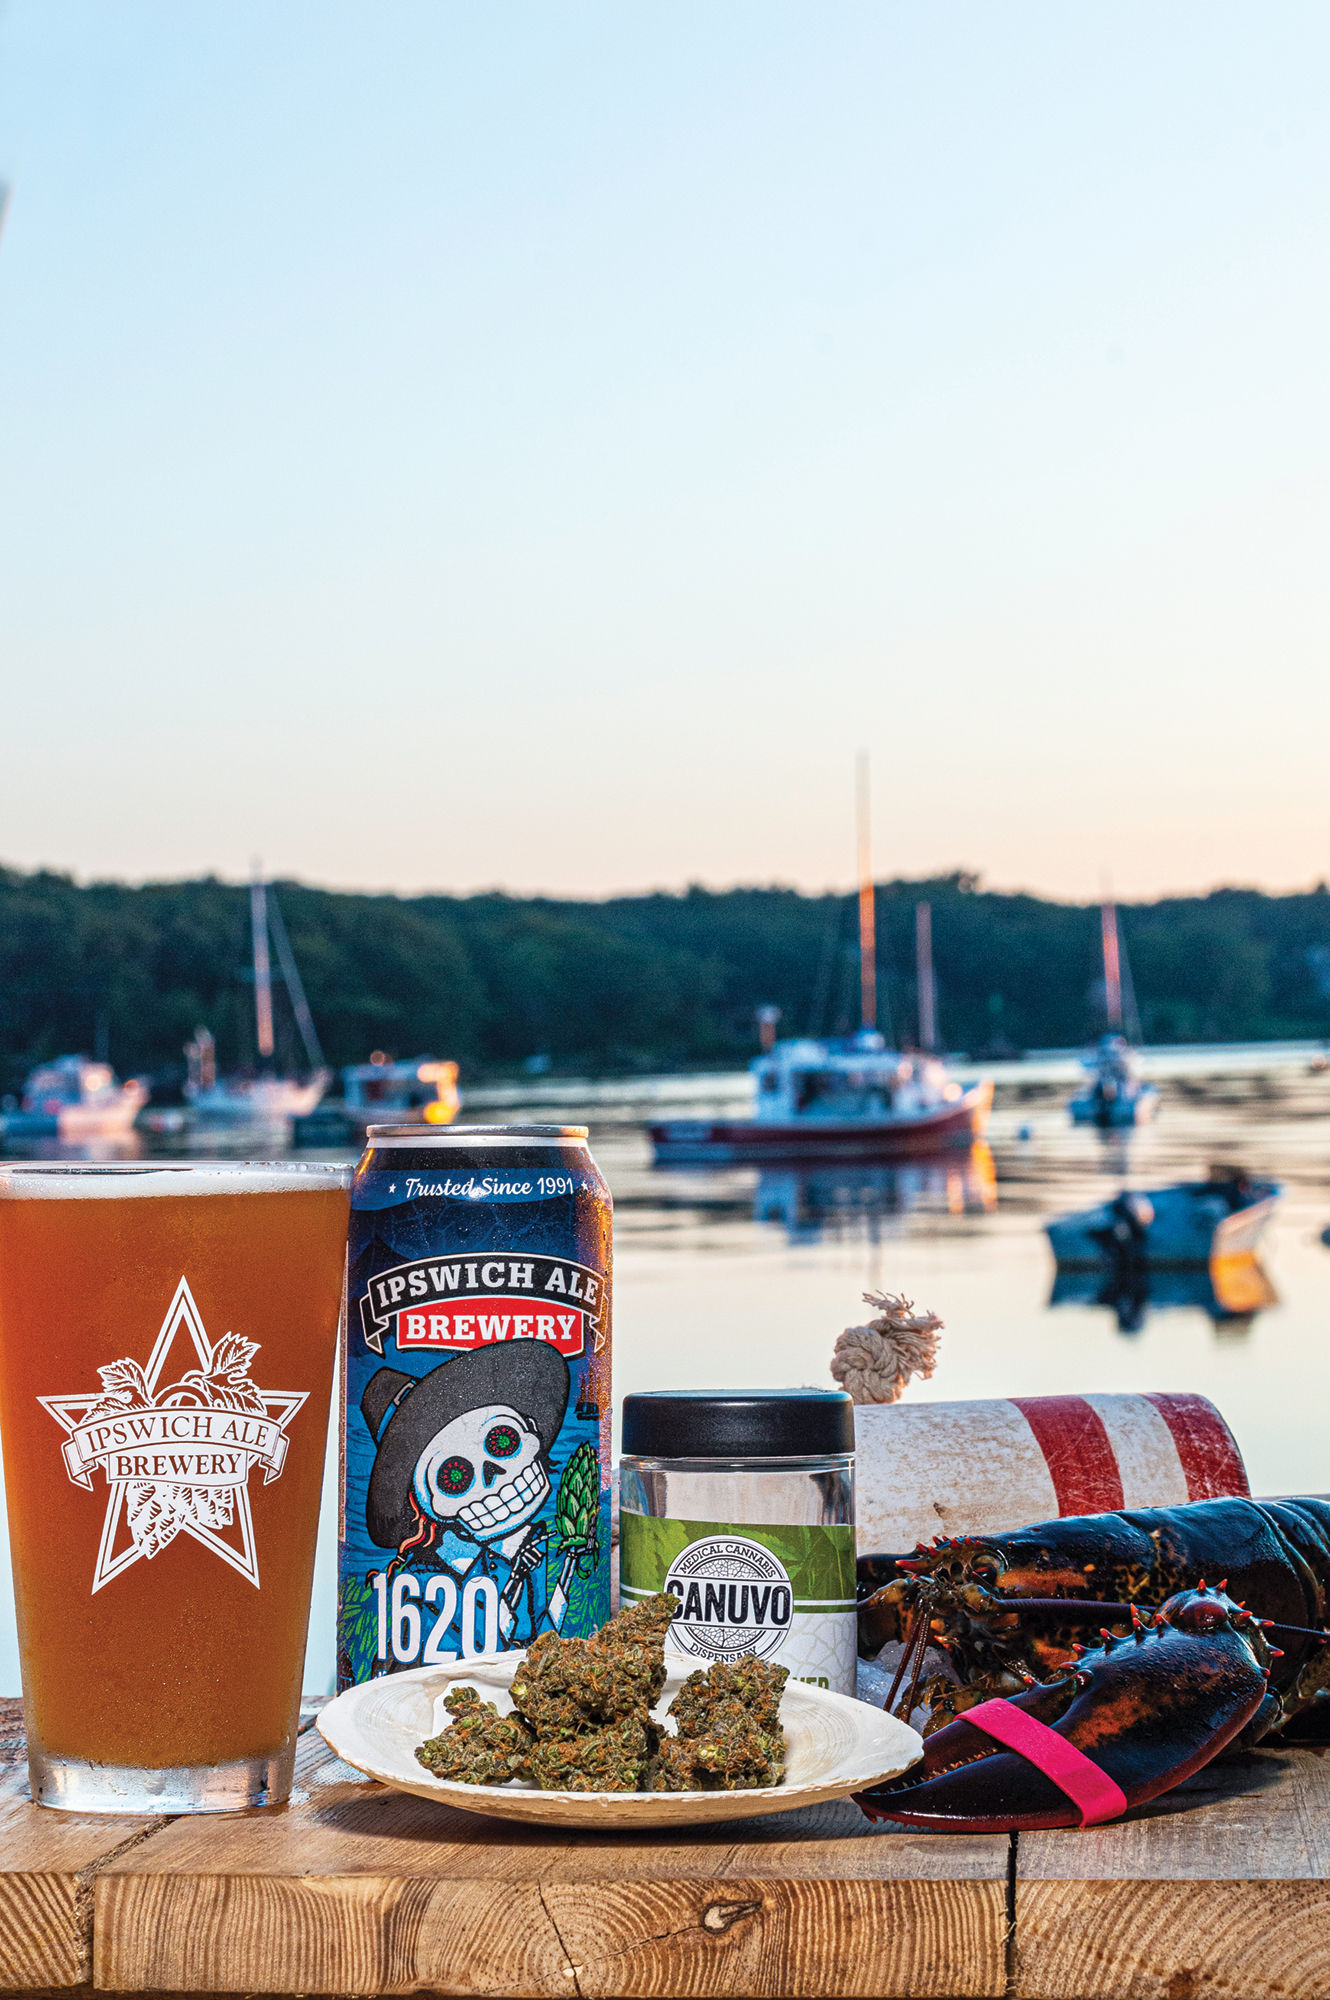 Moose and Lobsta and Ipswich Ale